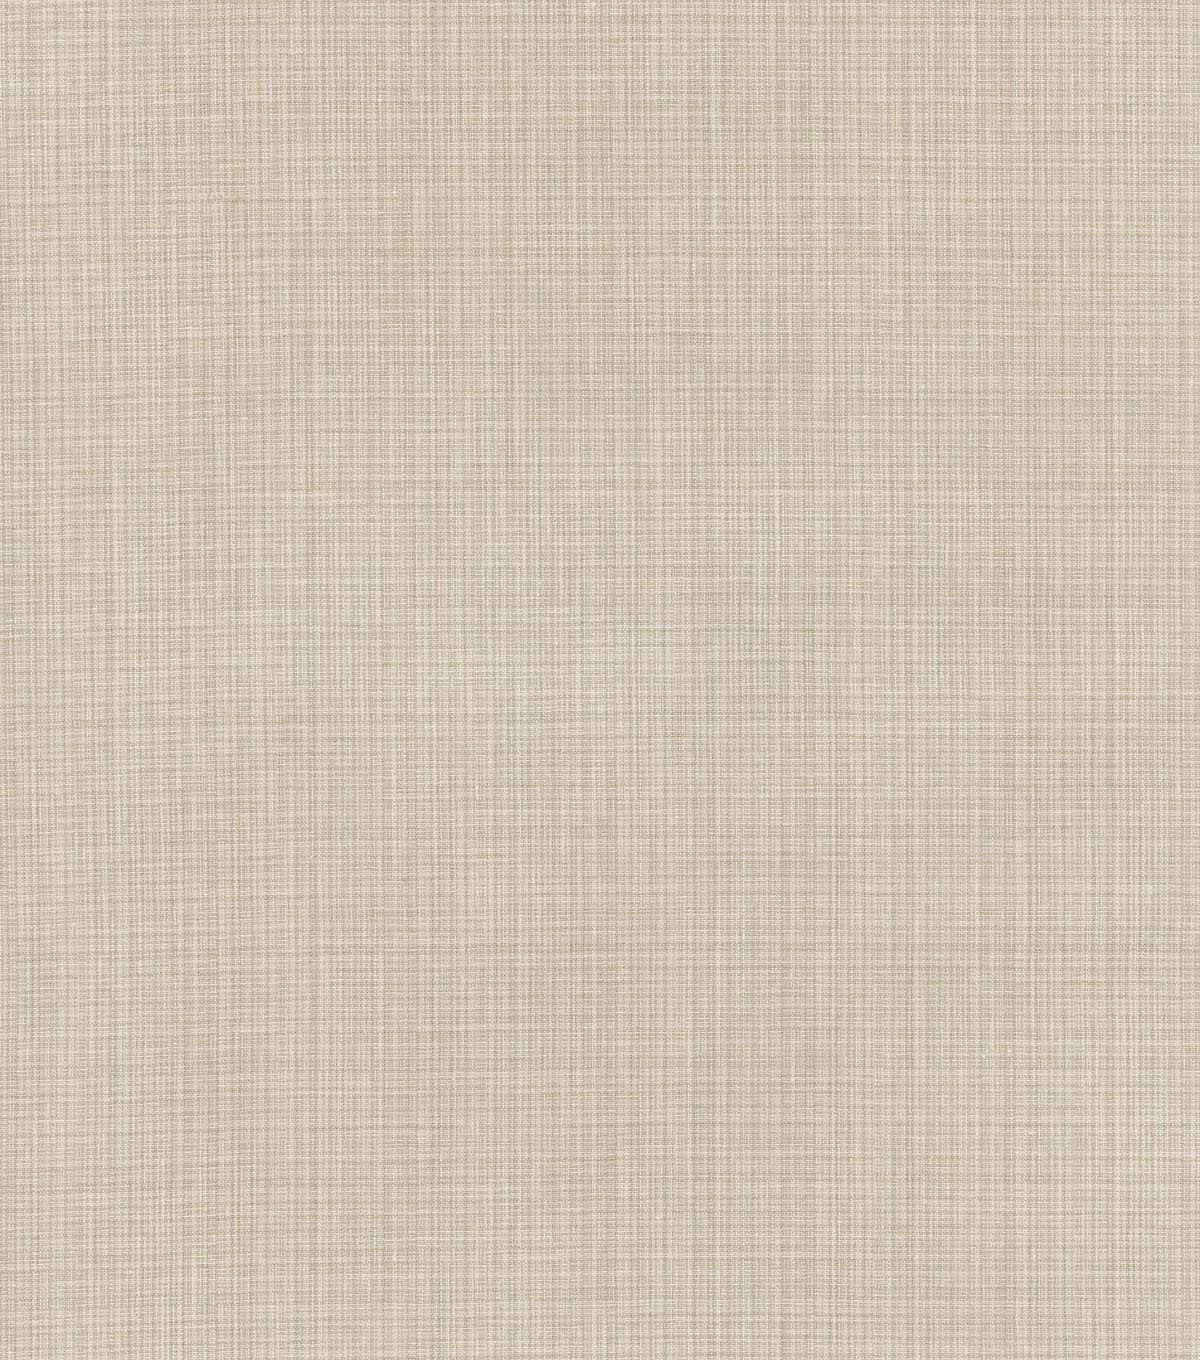 Home Decor 8\u0022x8\u0022 Swatch Fabric-Williamsburg Stratford Strie Linen